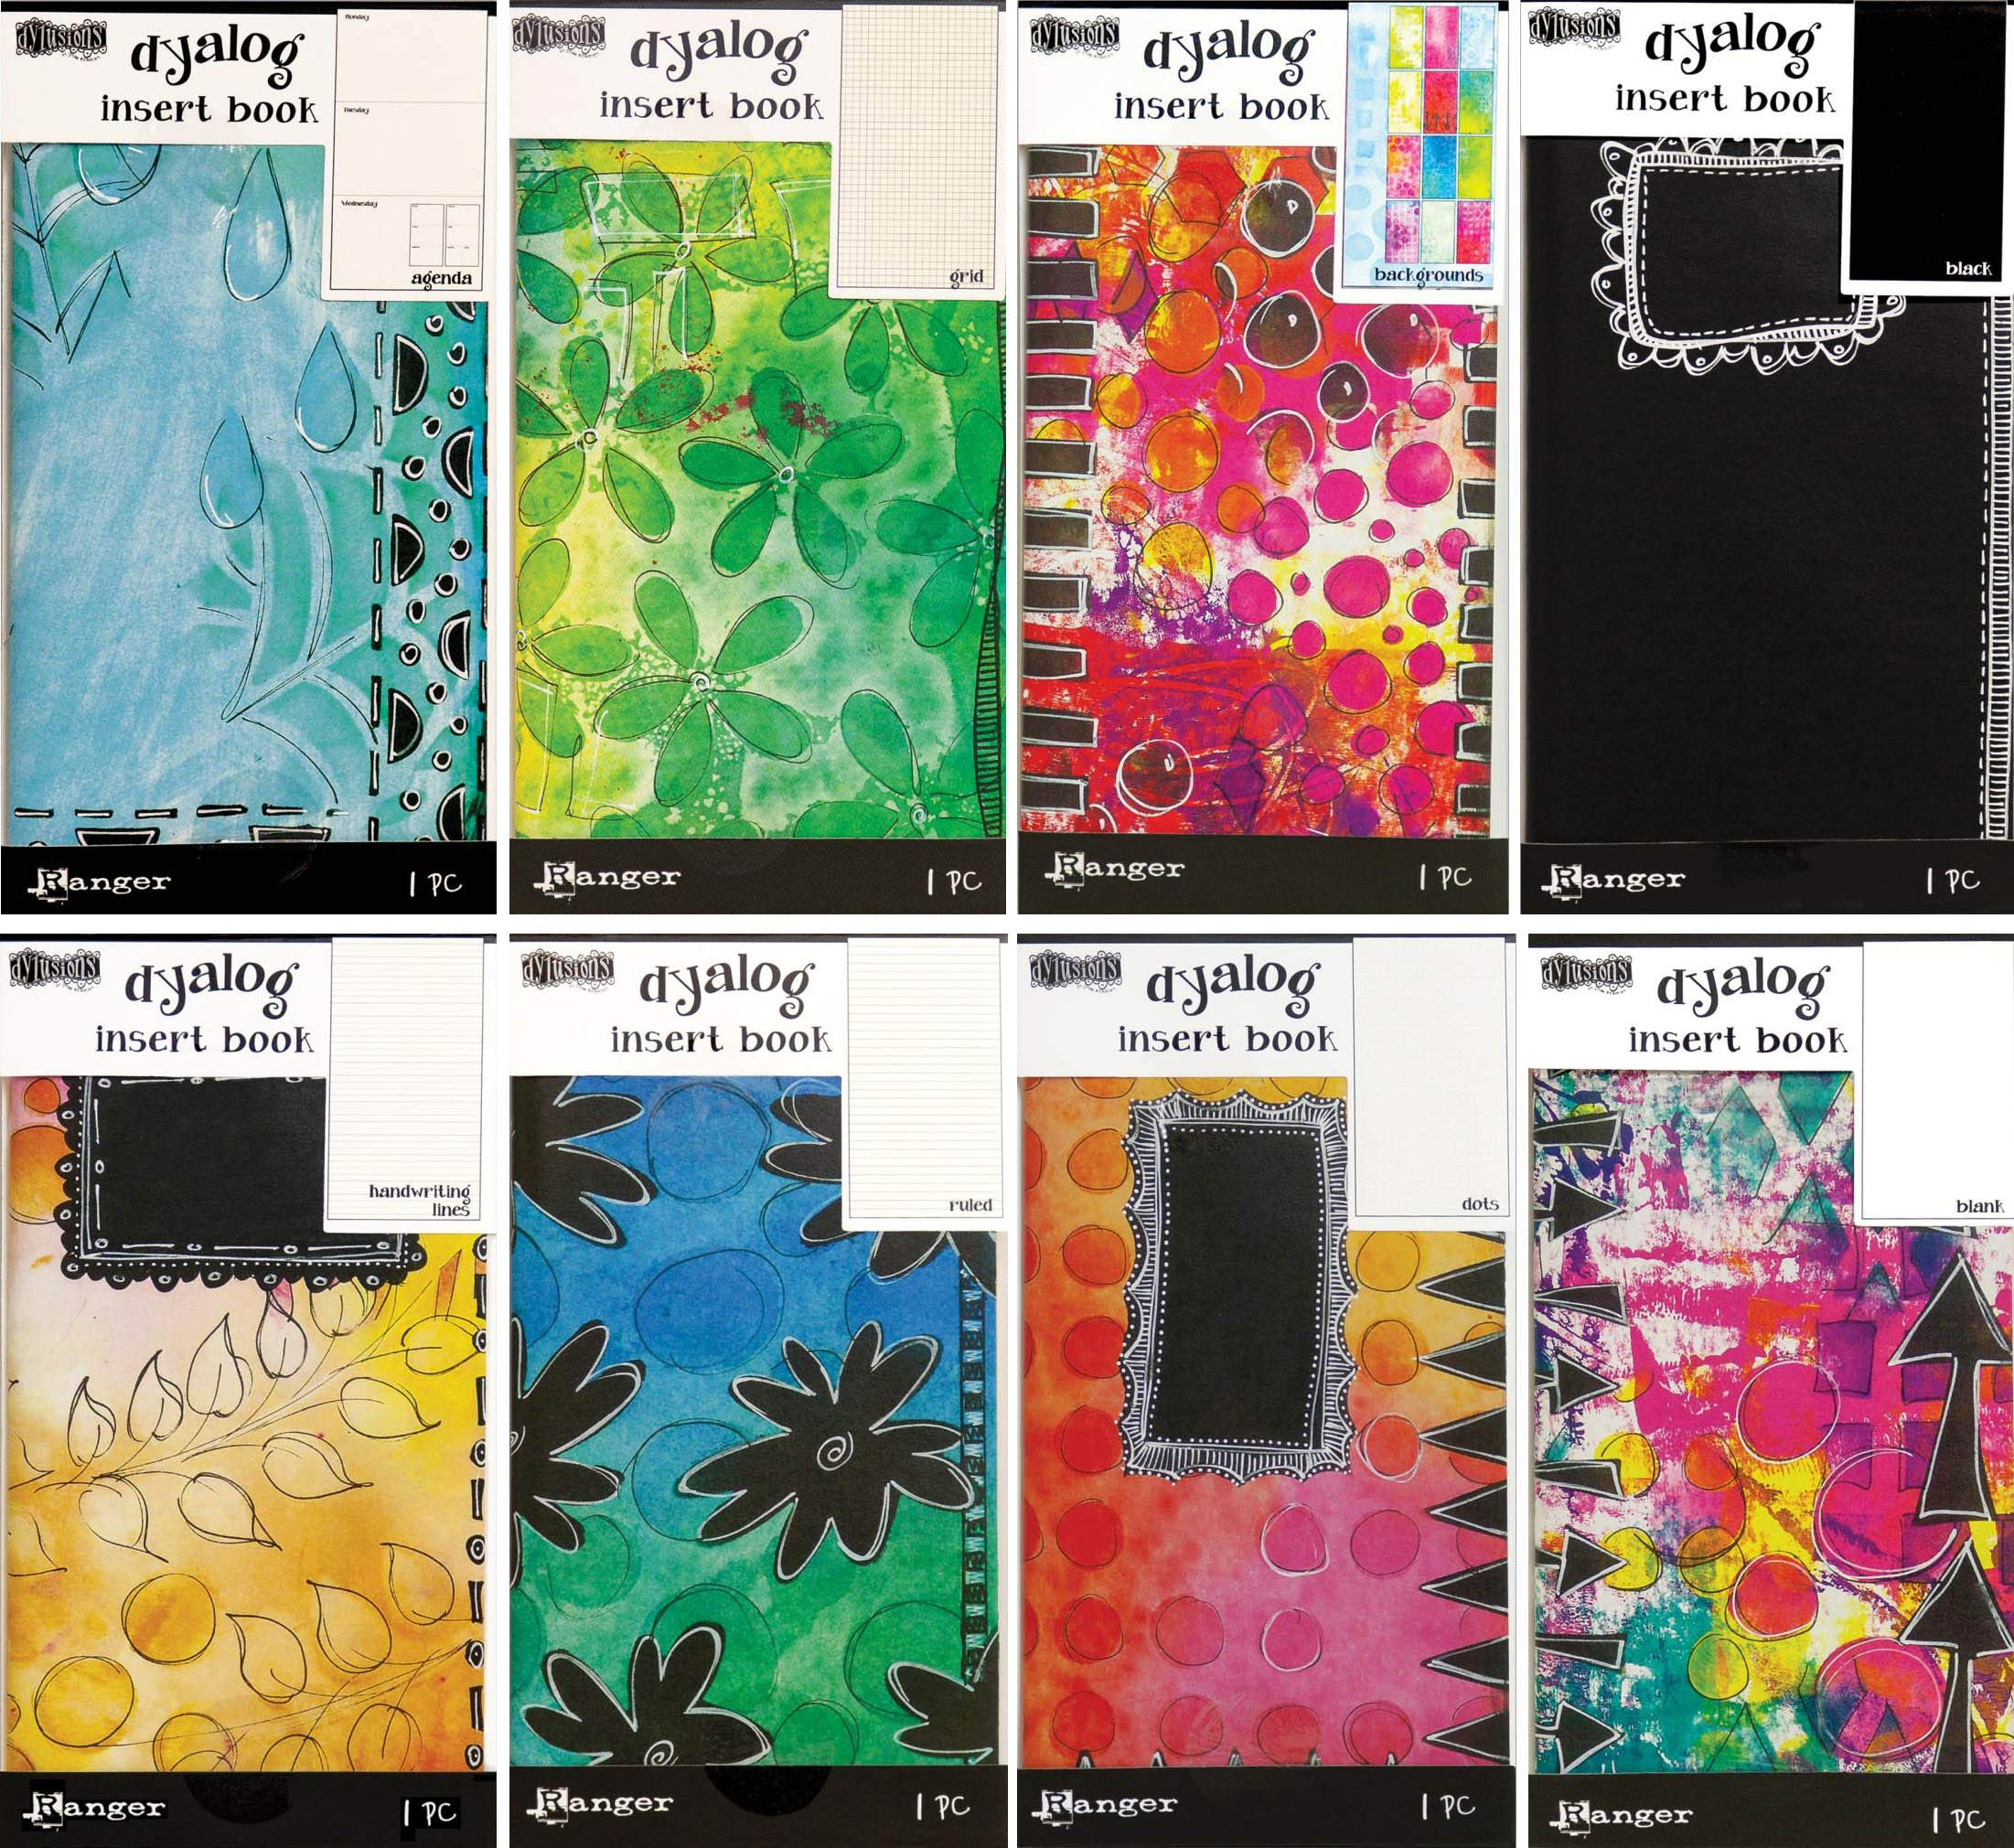 Dyan Reaveley's Dylusions Dyalog Insert Books #2-2019 - 8 Item Bundle by Dylusions